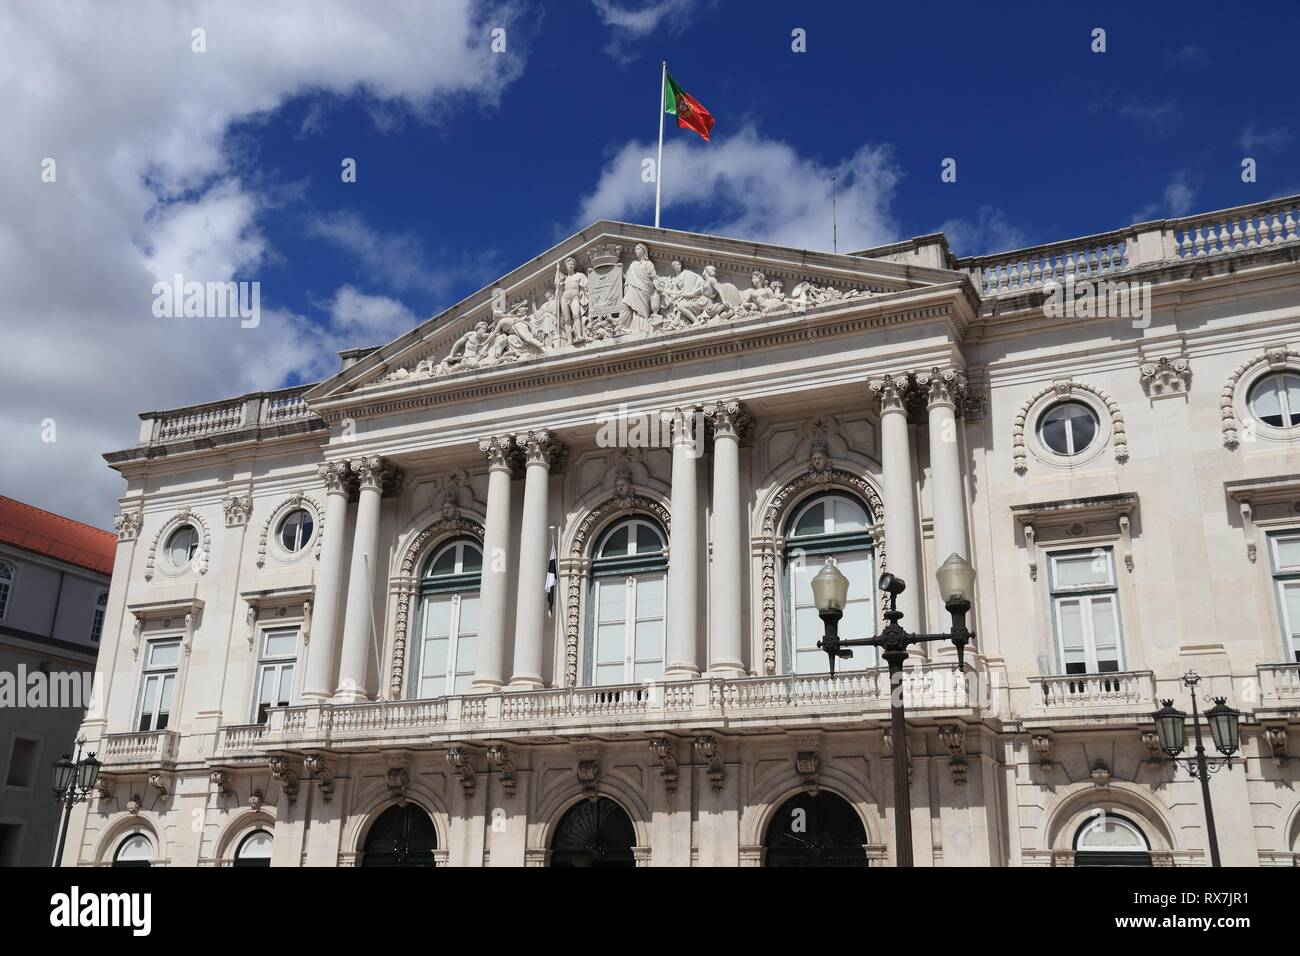 Lisbon City In Portugal City Hall Local Government Stock Photo Alamy